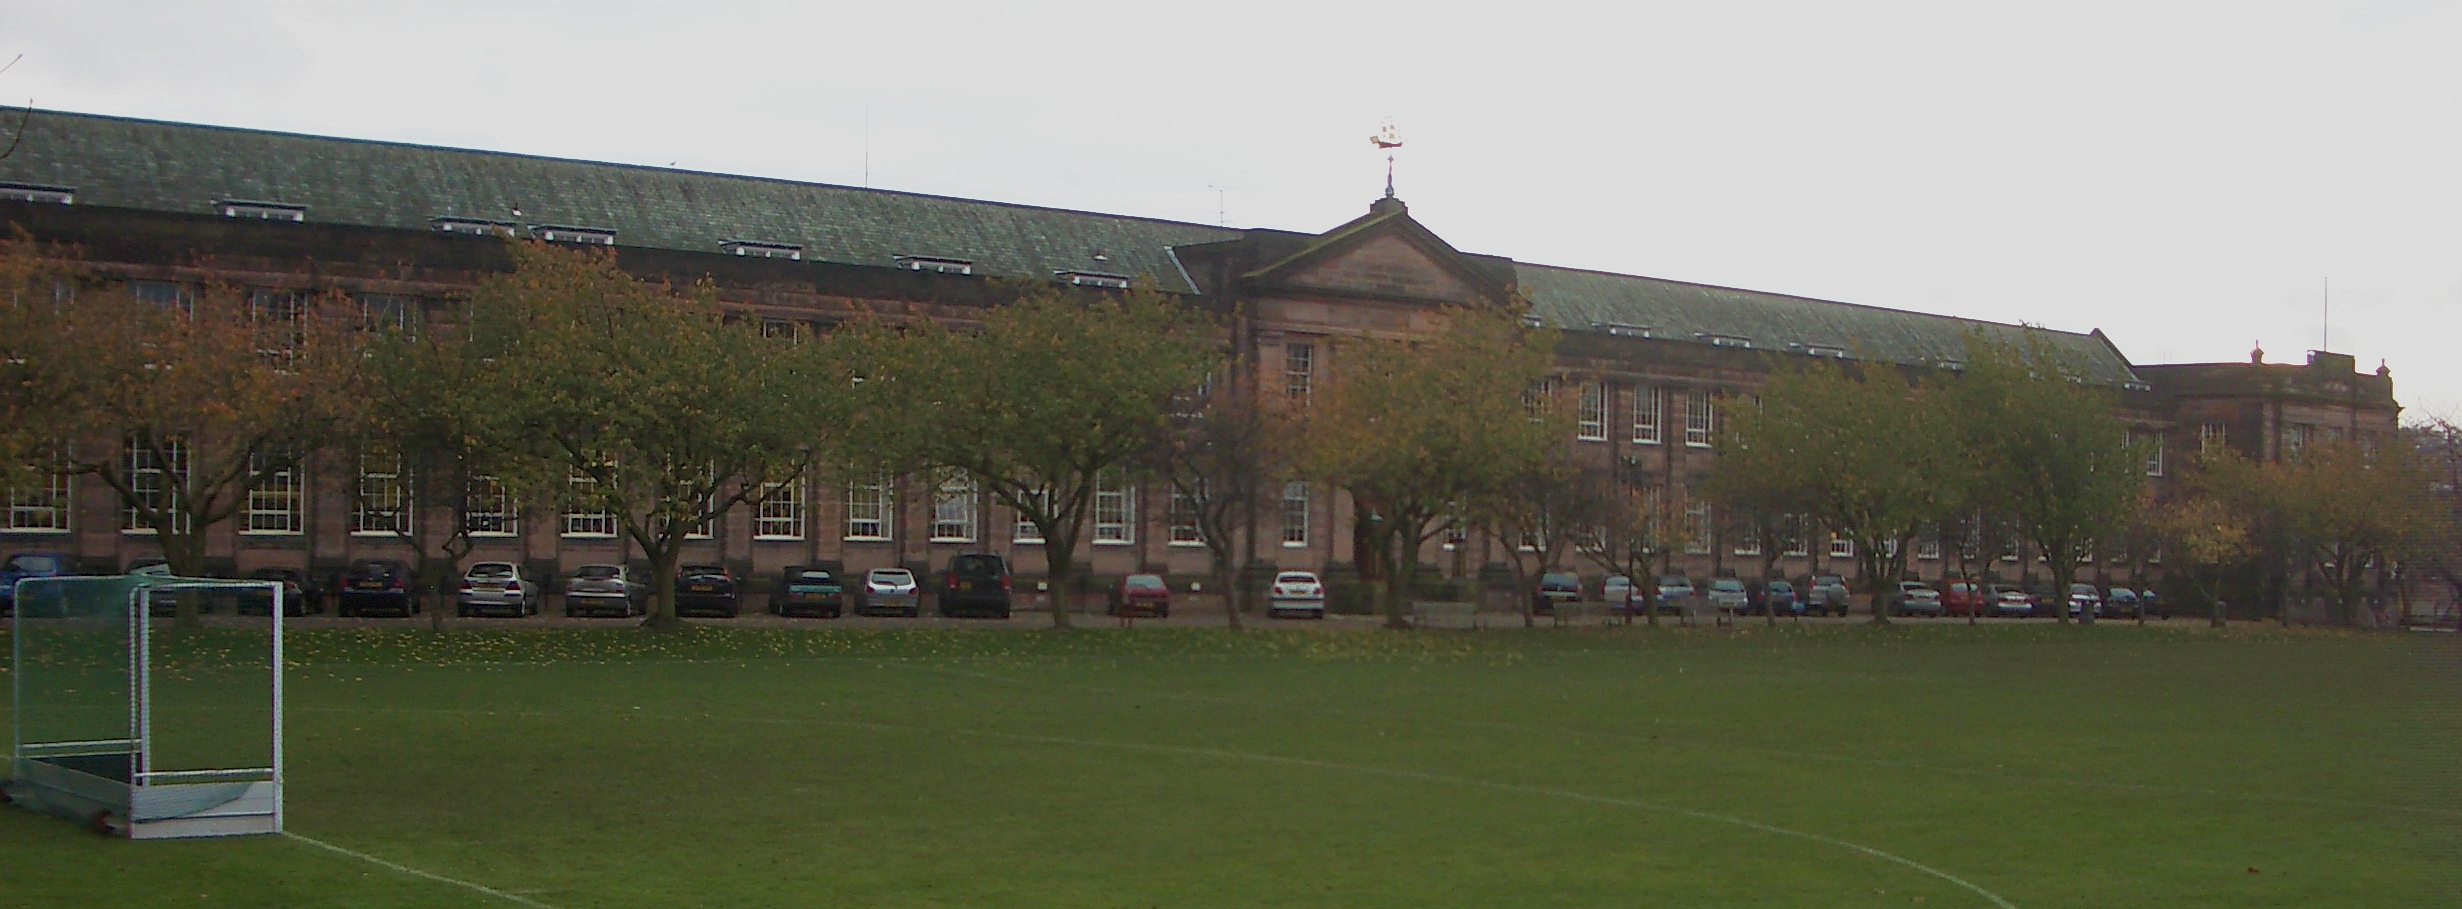 image of George Watson's College